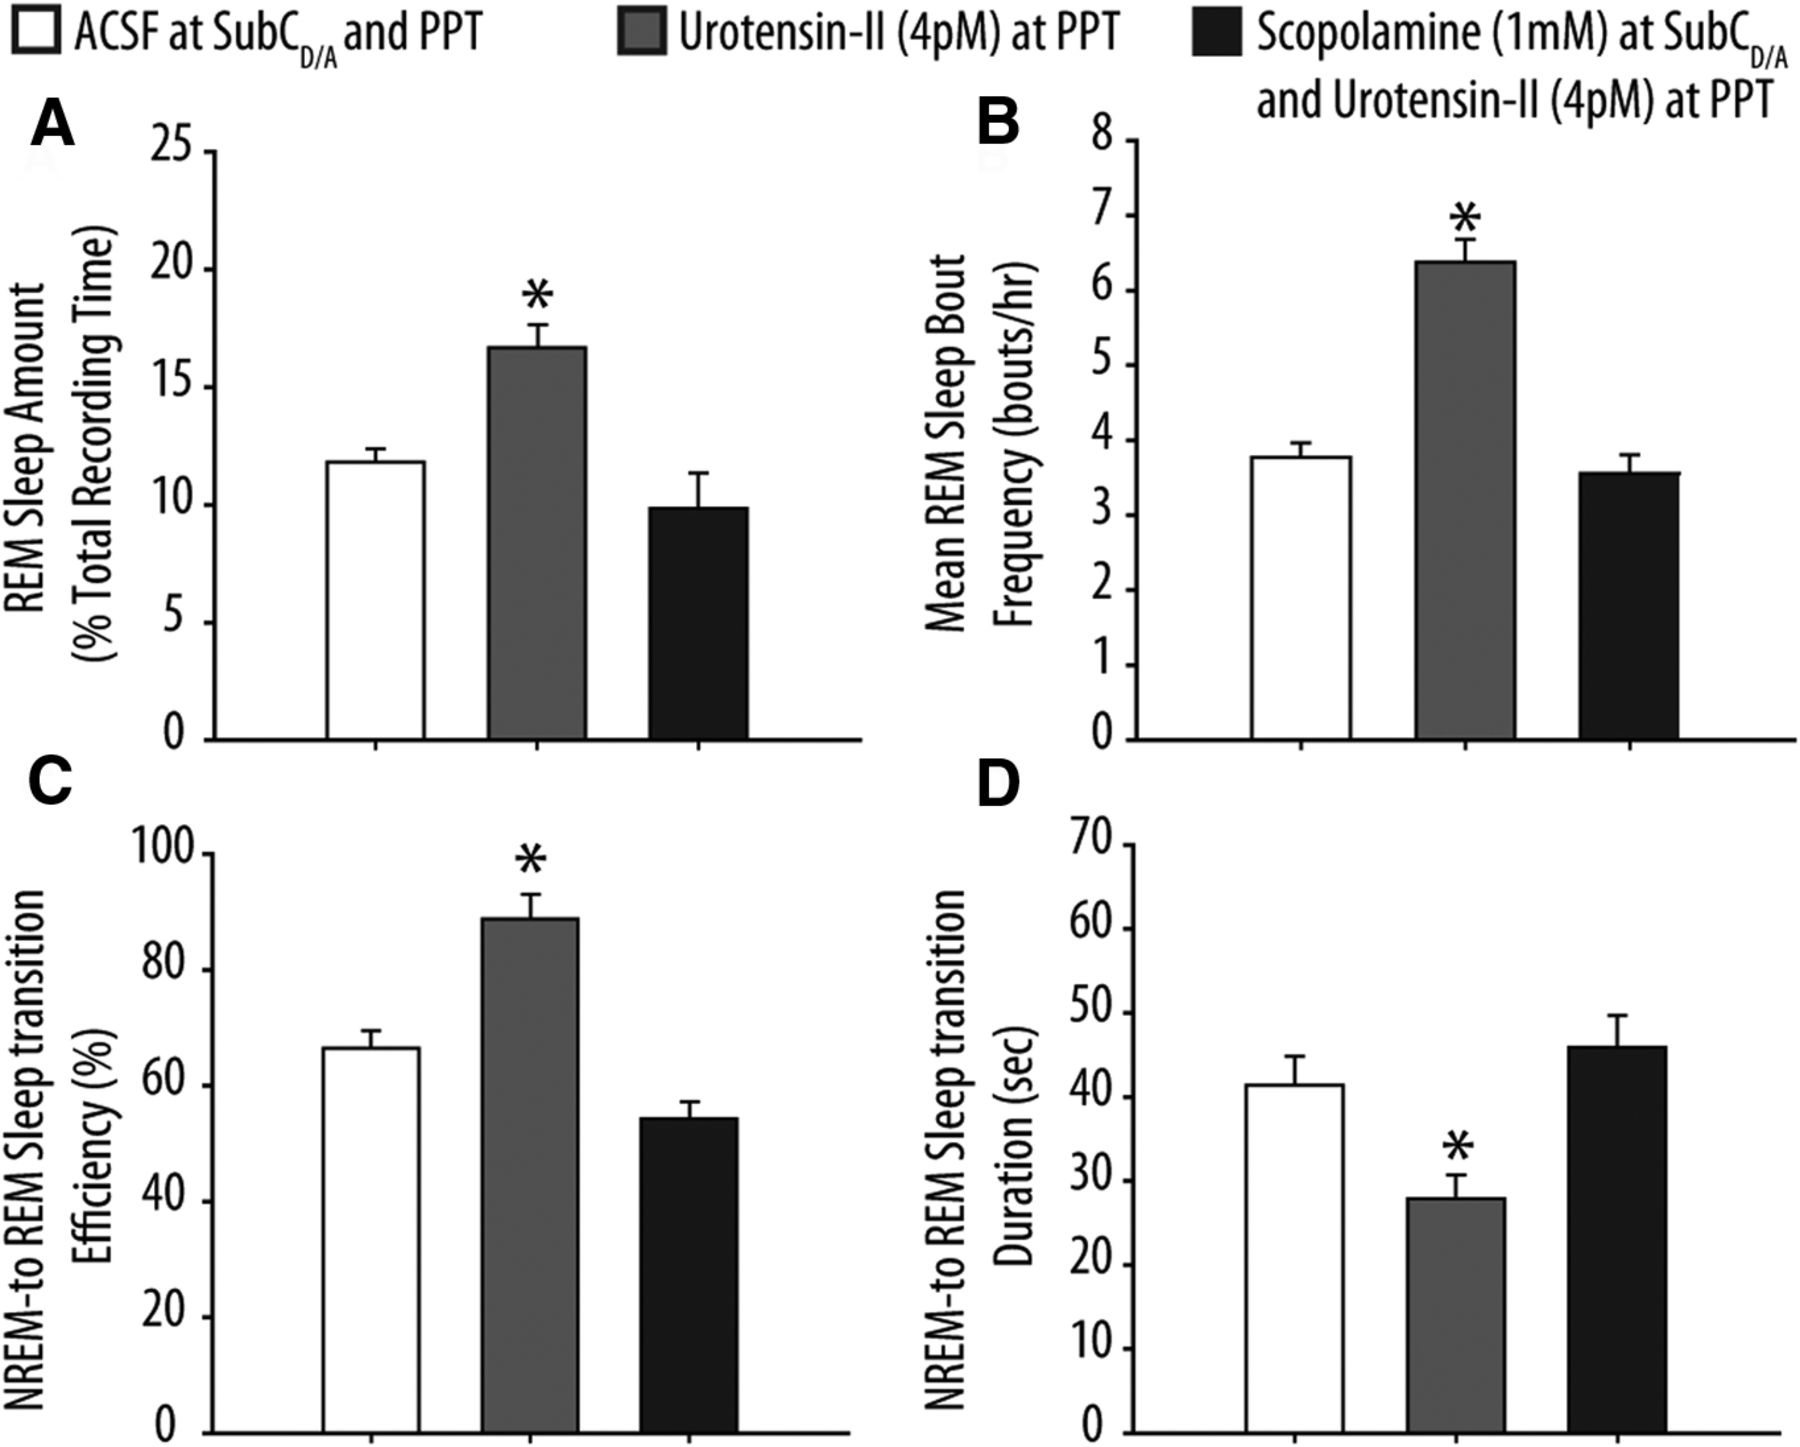 Endogenous Cholinergic Input to the Pontine REM Sleep